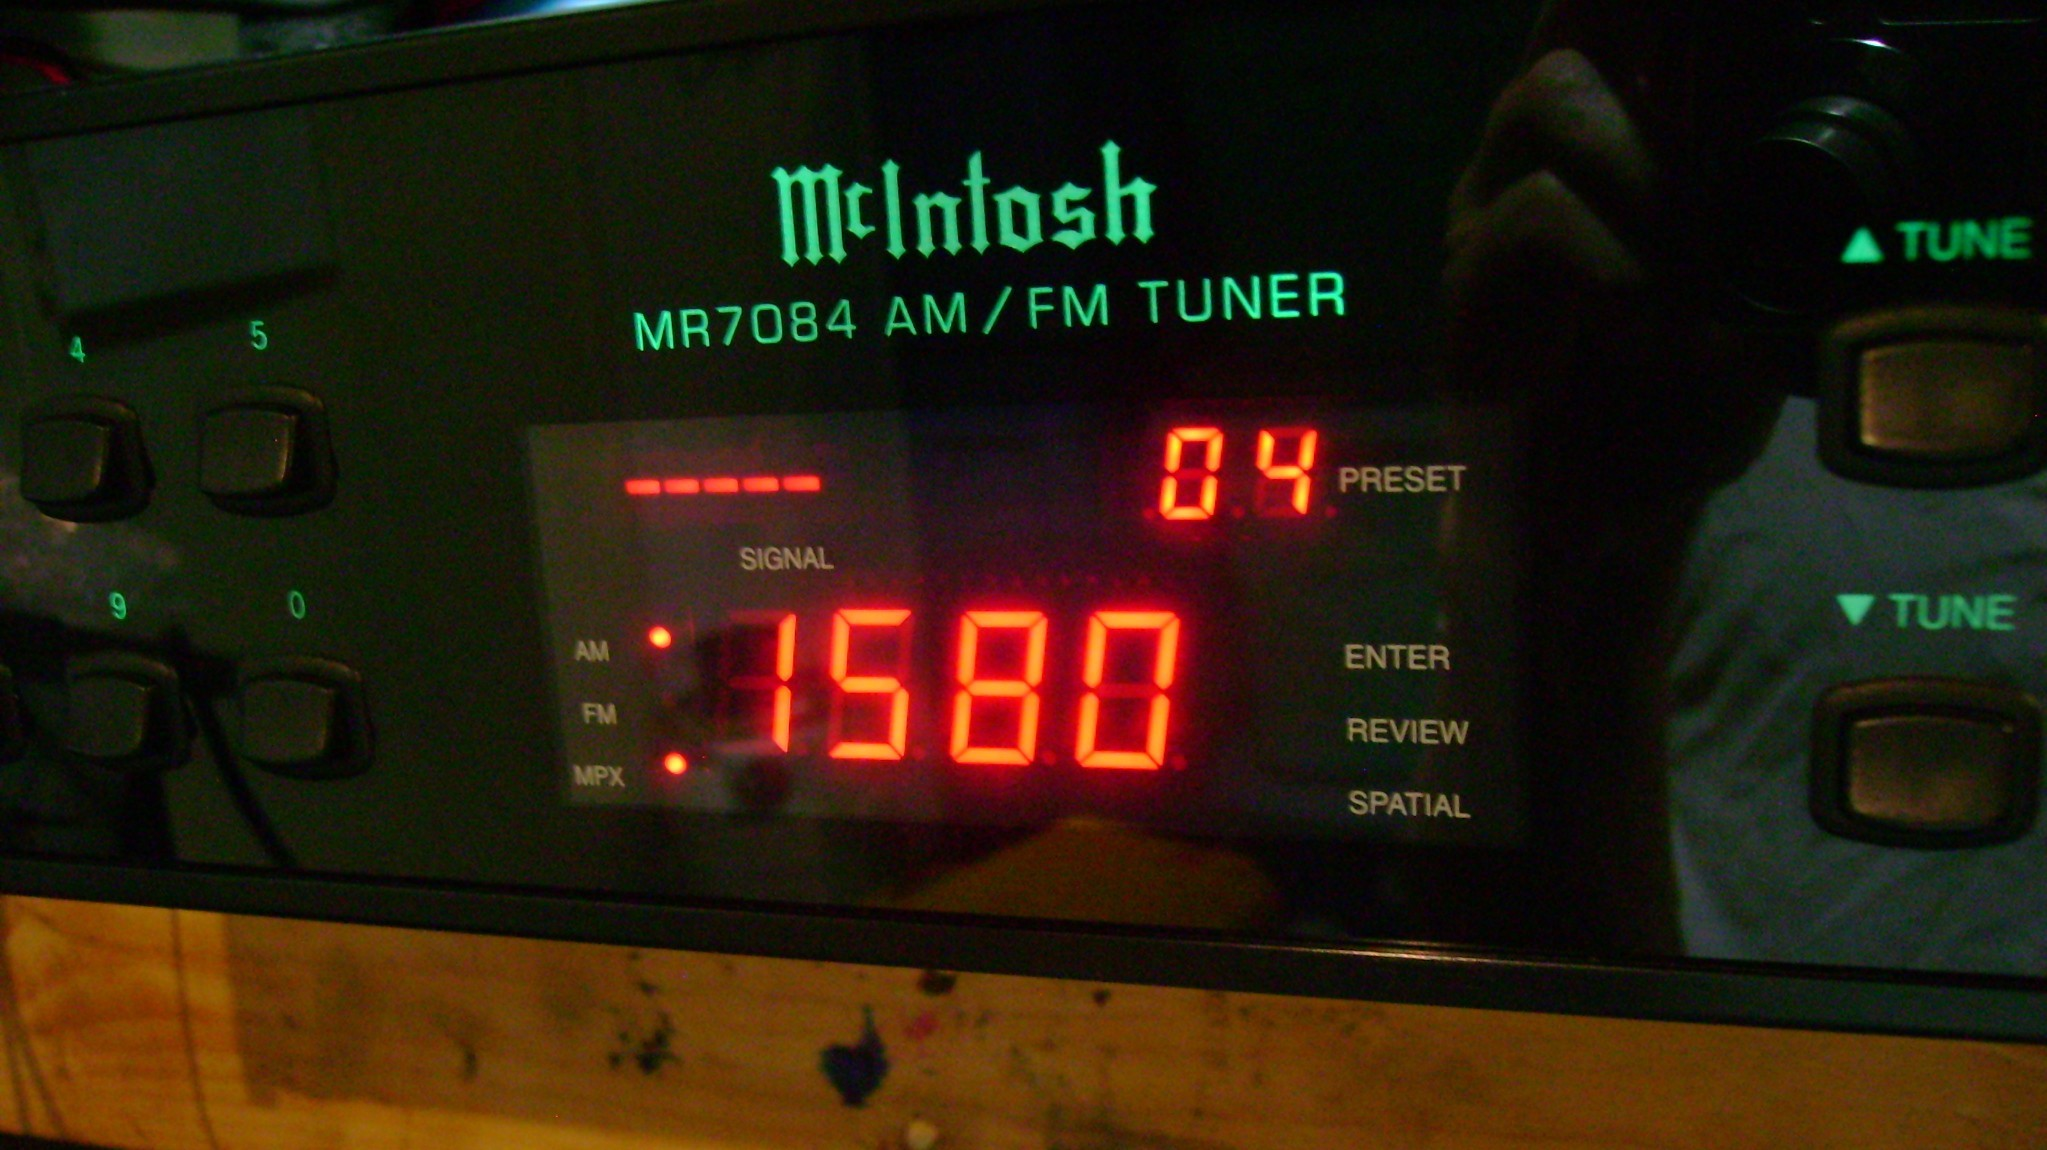 McIntosh front panel with white LED